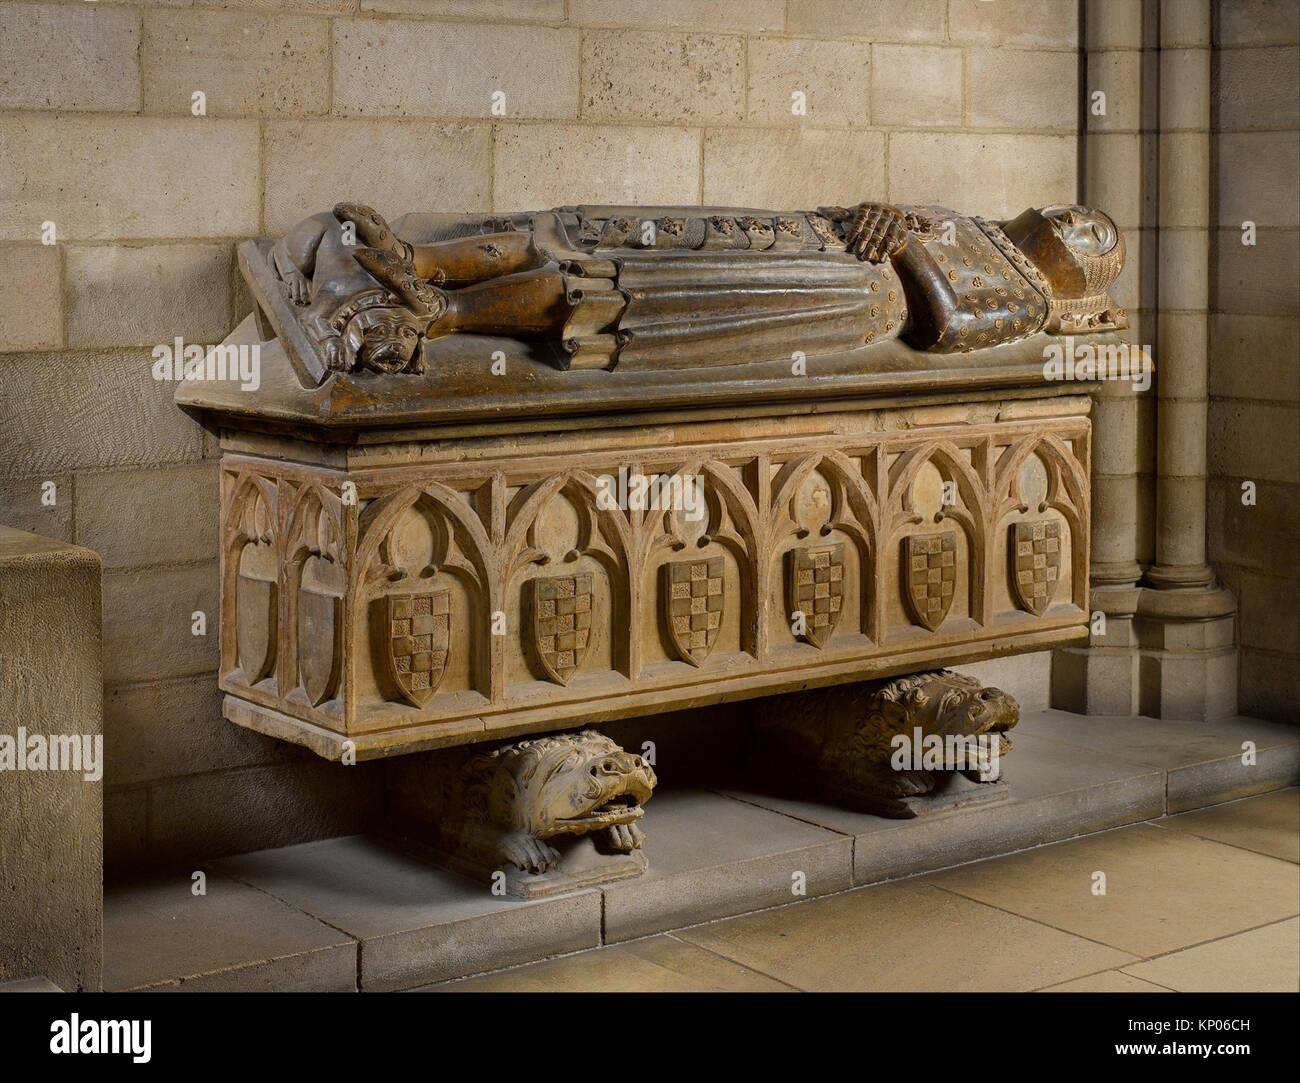 Count Of Urgell Stock Photos Count Of Urgell Stock Images Alamy # Muebles Seu D'Urgell